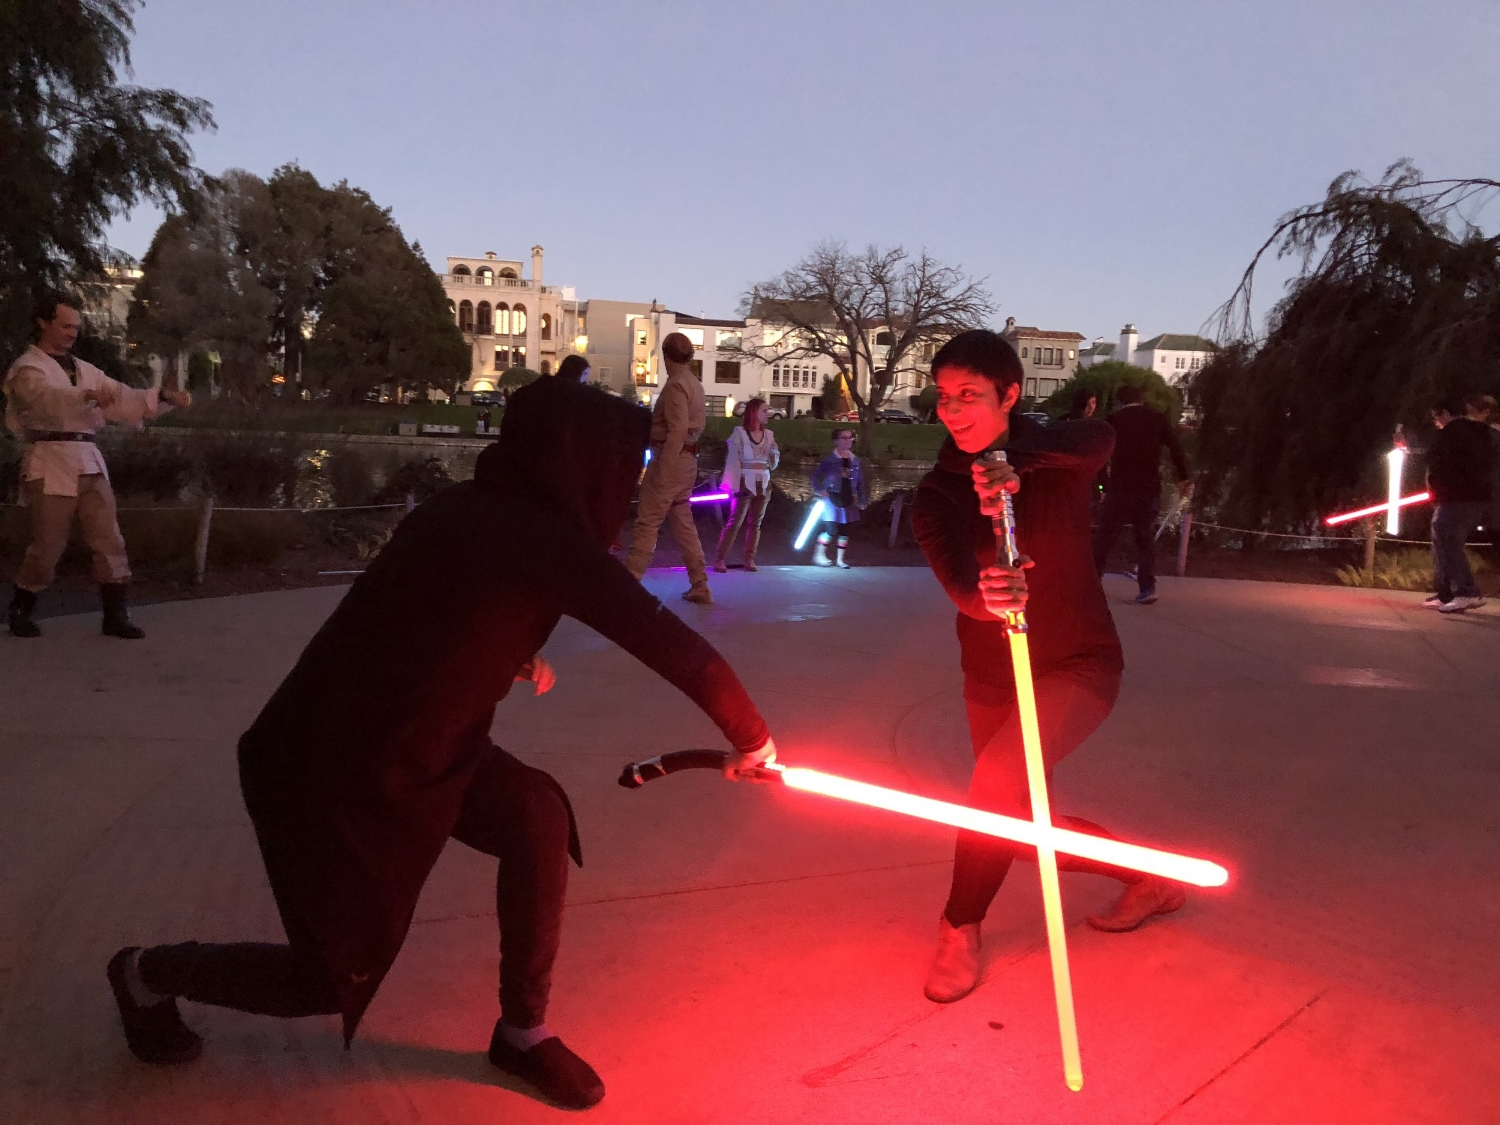 Curious about joining a class? - Shawna is featured in a recent KQED news article about lightsaber choreography groups in the Bay Area. From Fitness to Fencing: Fans Learn How to Fight Star Wars Style